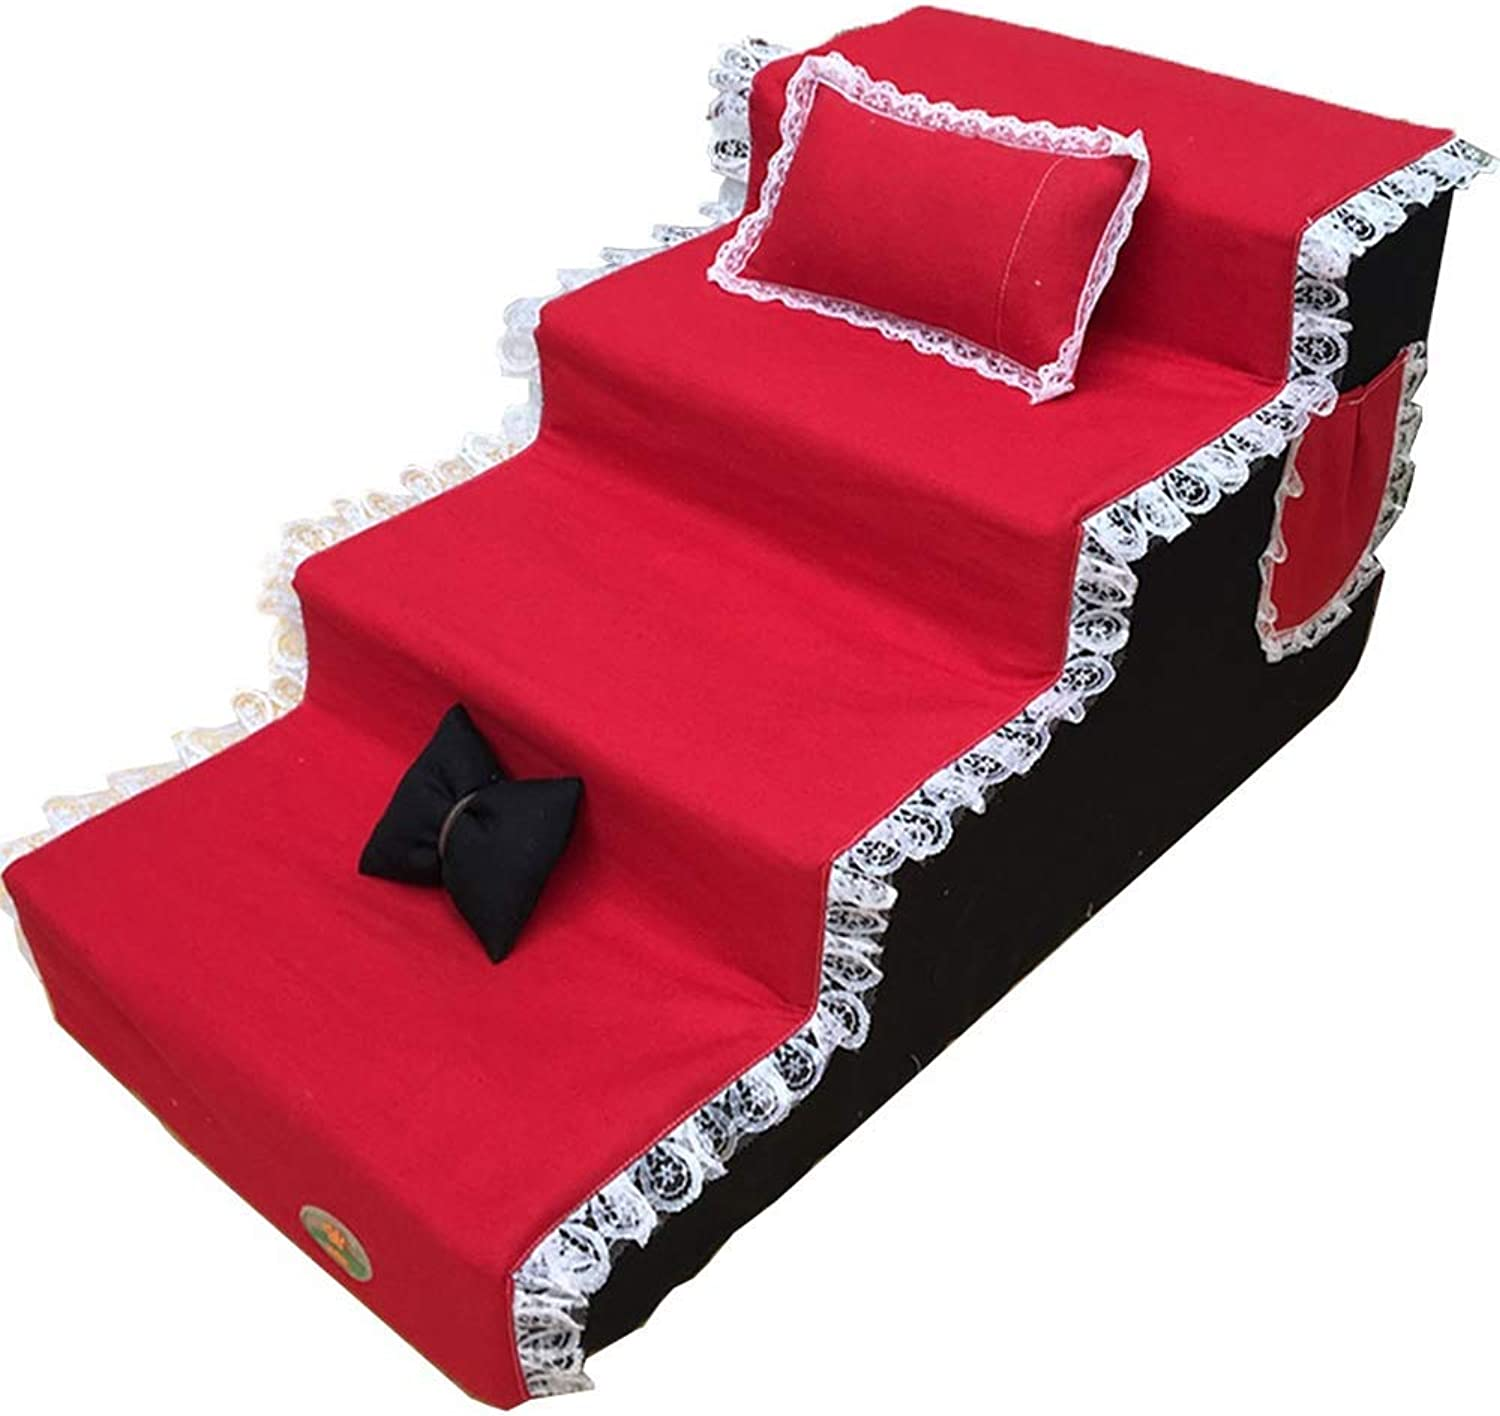 Pet Cat Dog Stair, 4 People High Bed Cat Dog, High Level Sofa Bed, Red And Black,80  40  50Cm